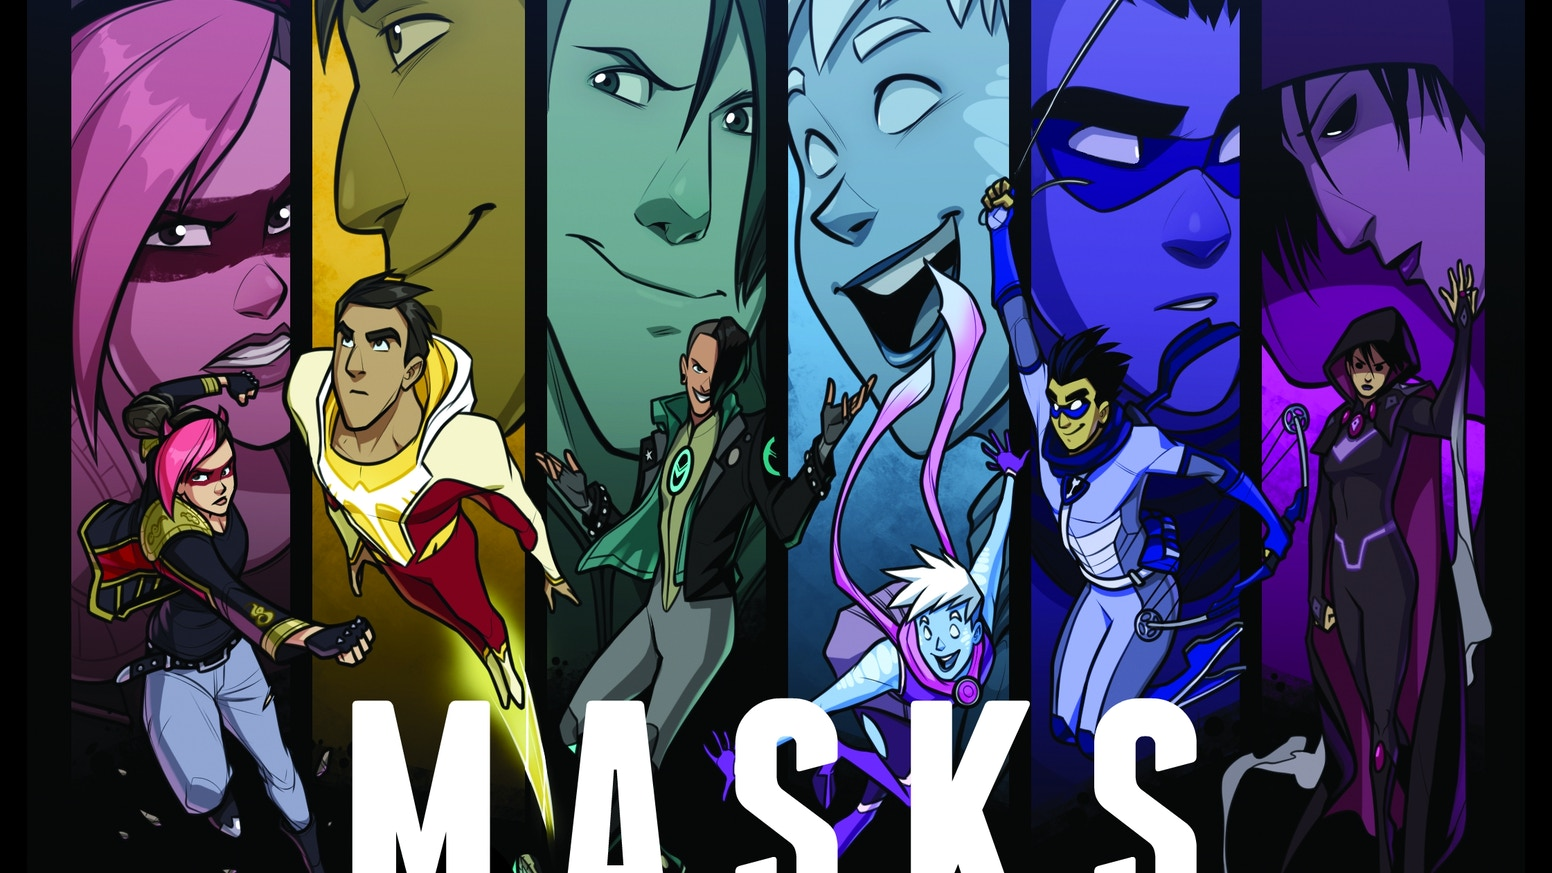 masks a new generation by brendan g conway kickstarter